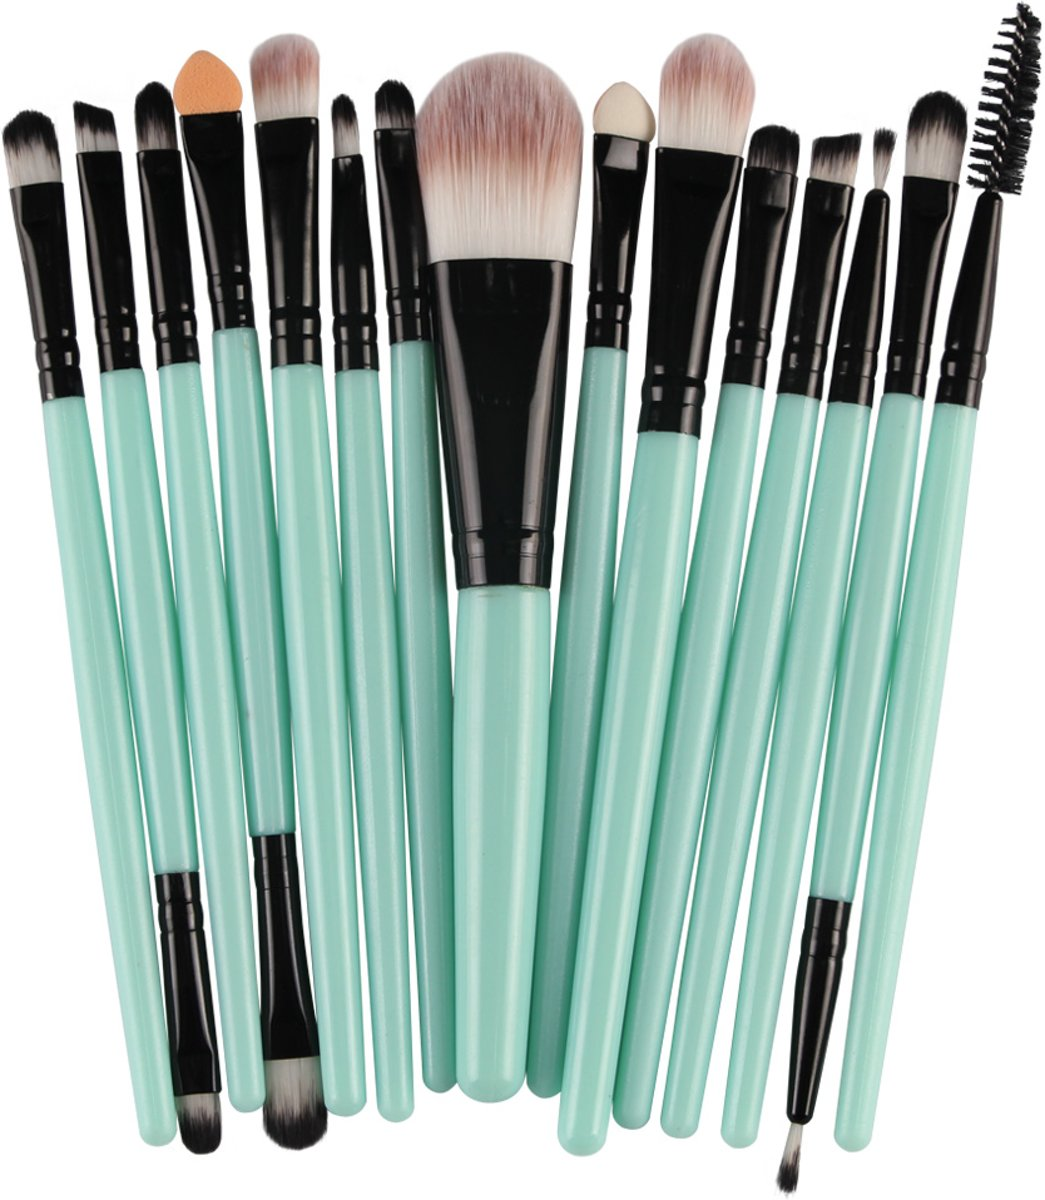 20 delige Makeup borstel set | Duurzame makeup brushes Groen